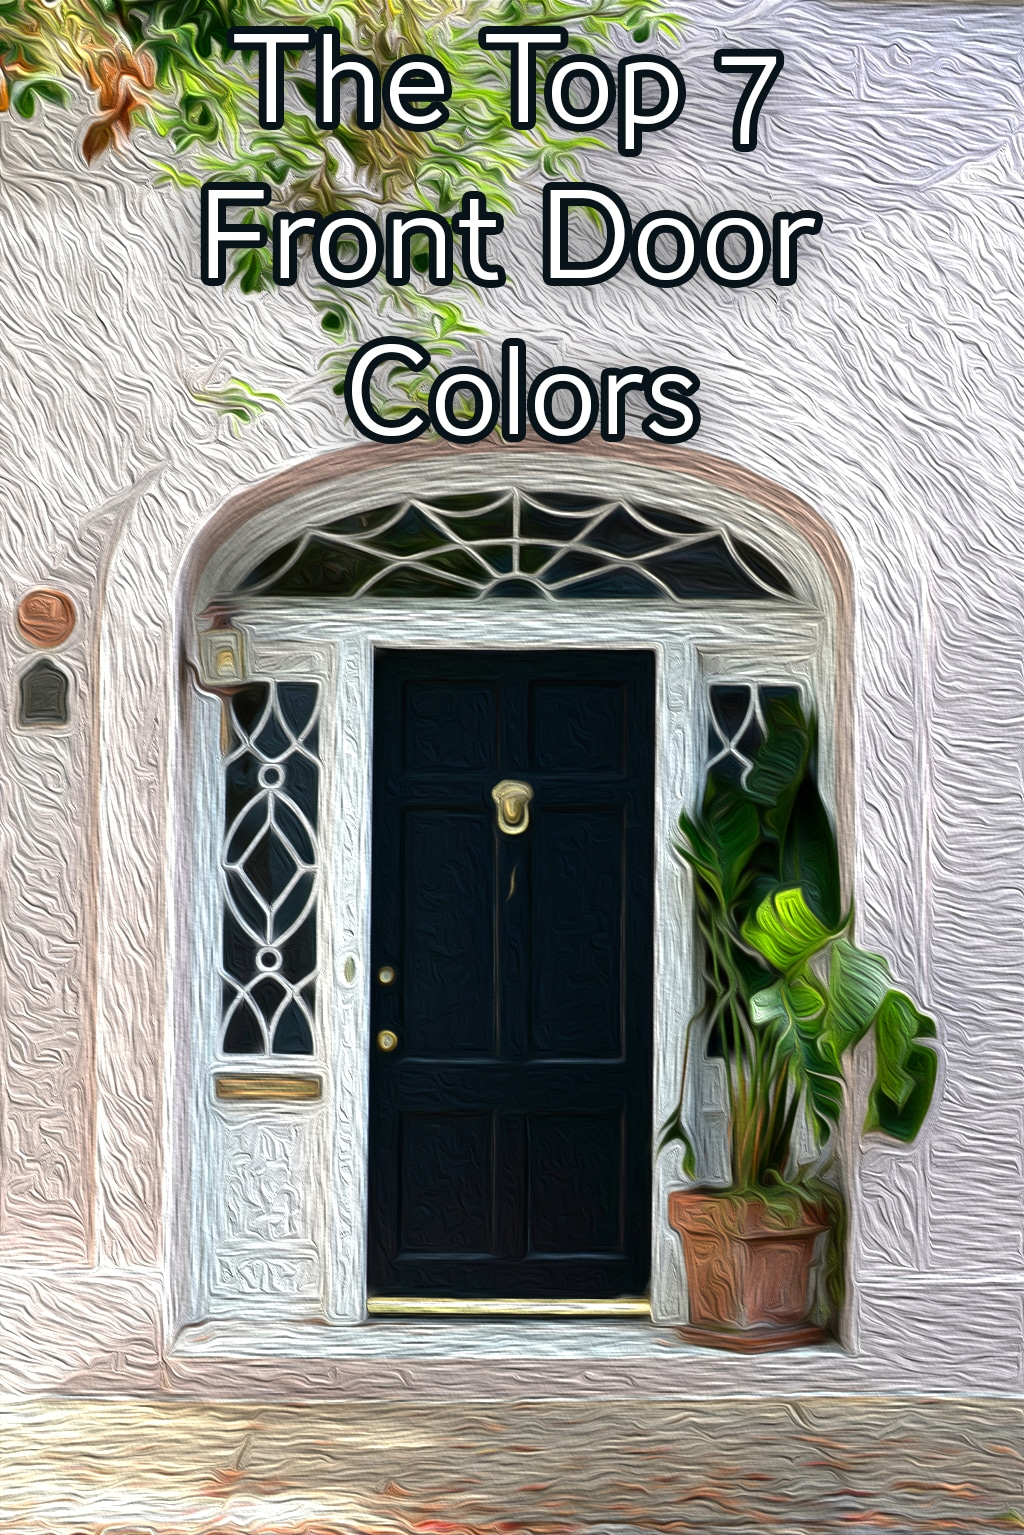 The Best Front Door Colors for 2018. Photo by Landis Brown on Unsplash.